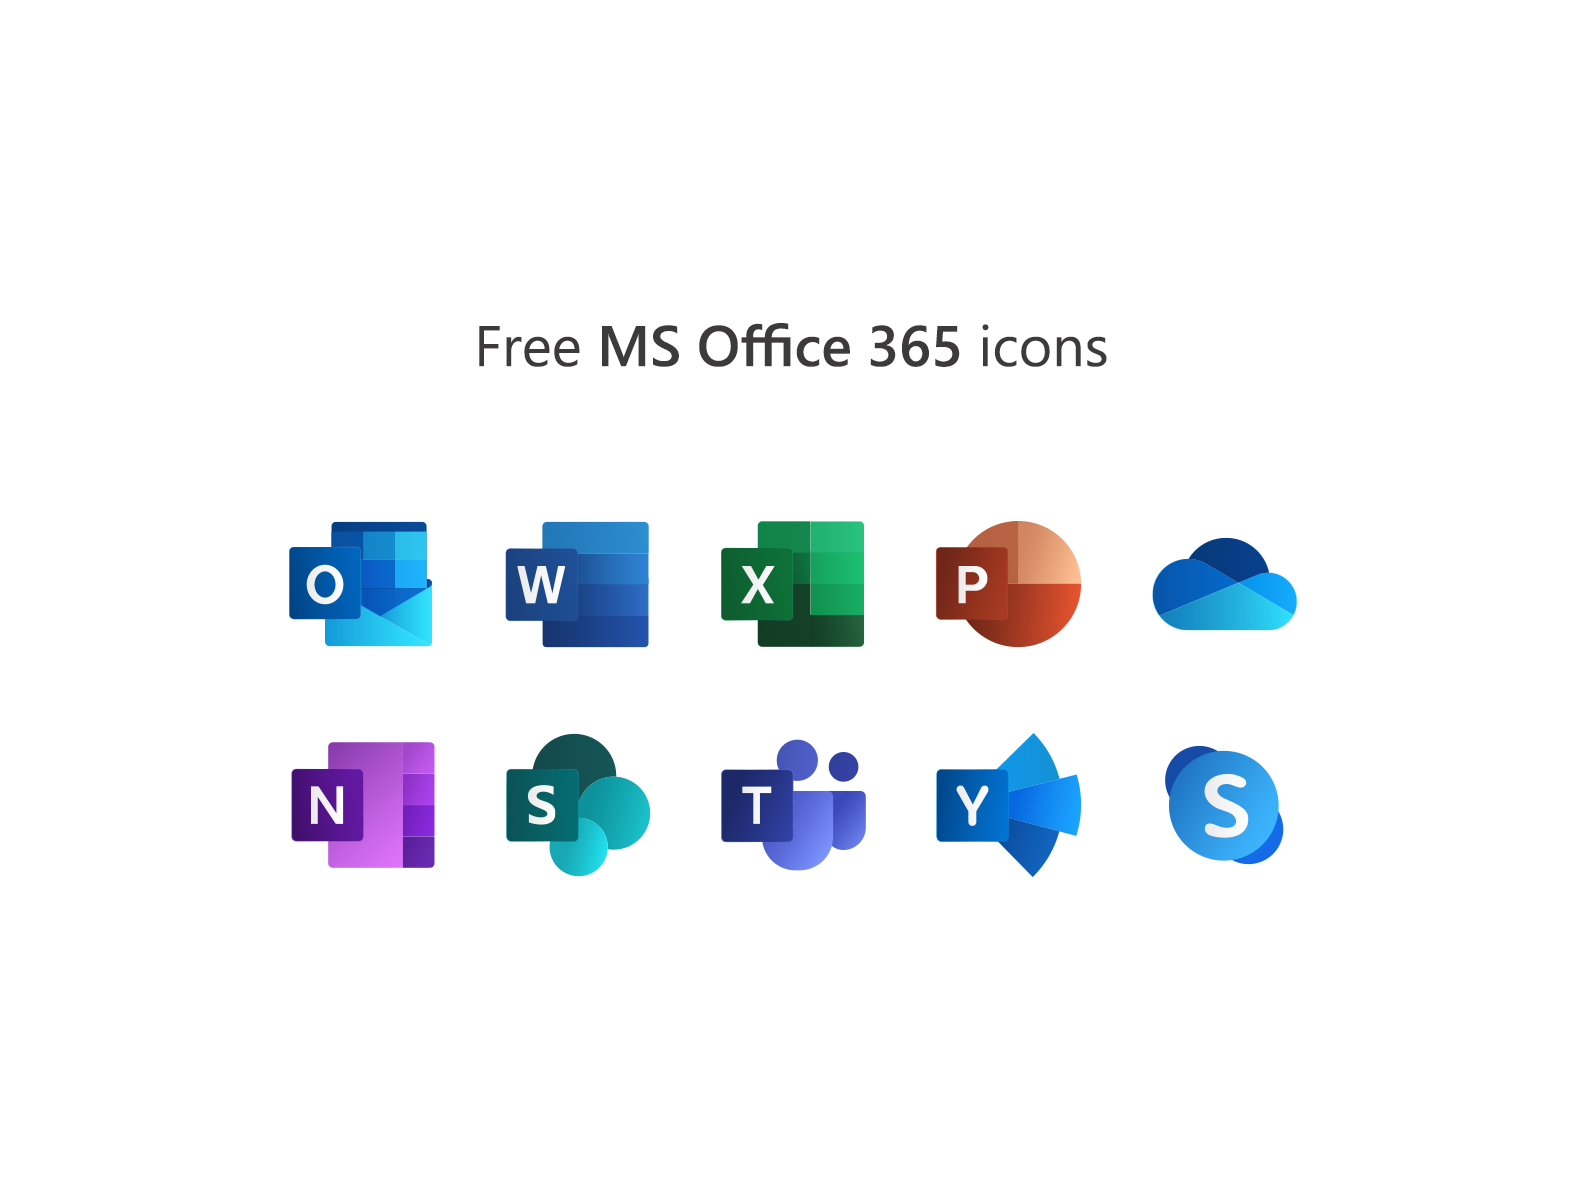 Free Microsoft Office 365 icons by Mr Boumkil on Dribbble